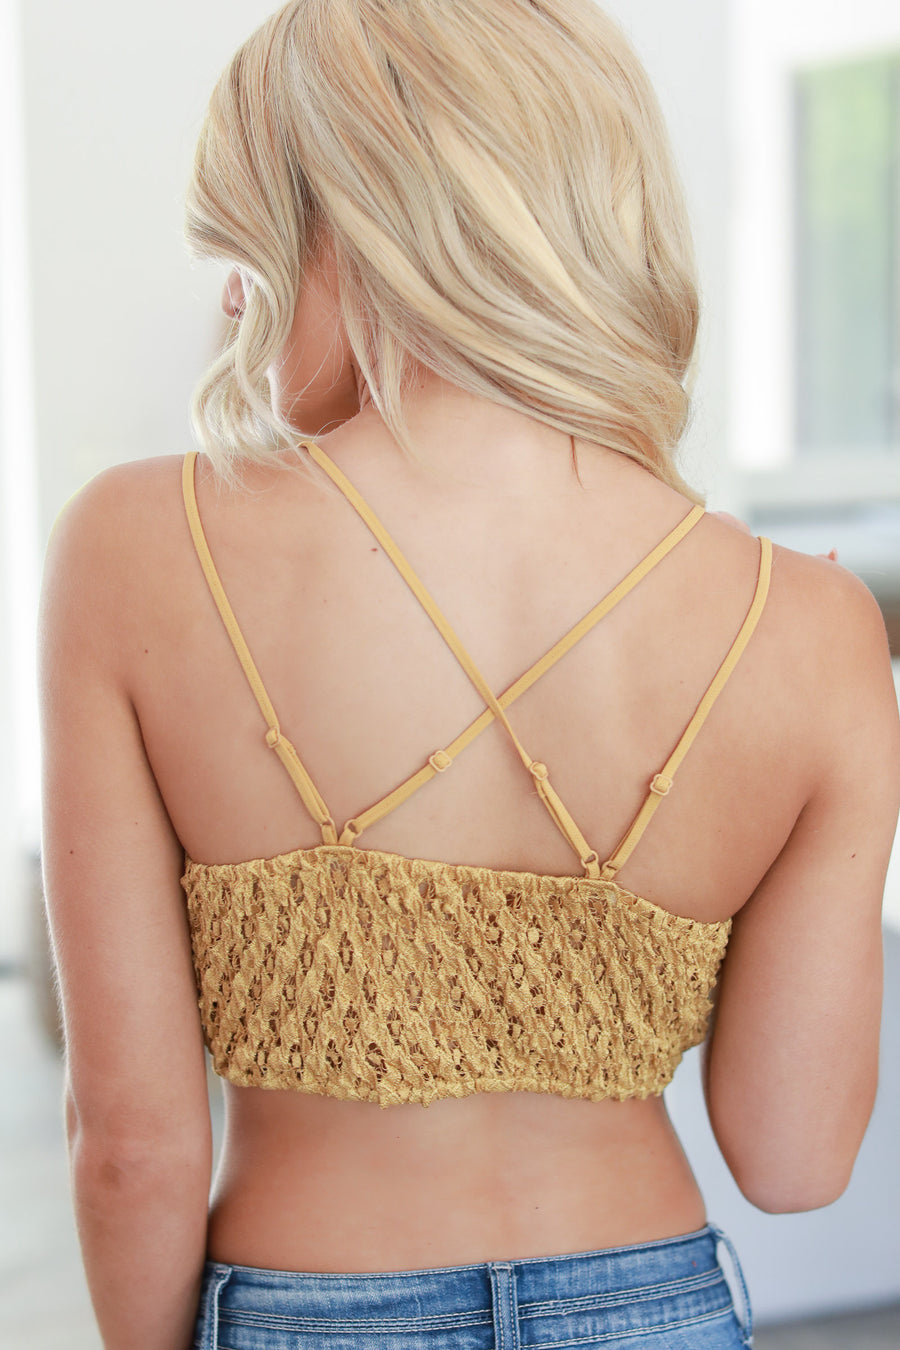 Day Dreamer Bralette - Mustard women's scallop lace beautiful bralette closet candy boutique 1